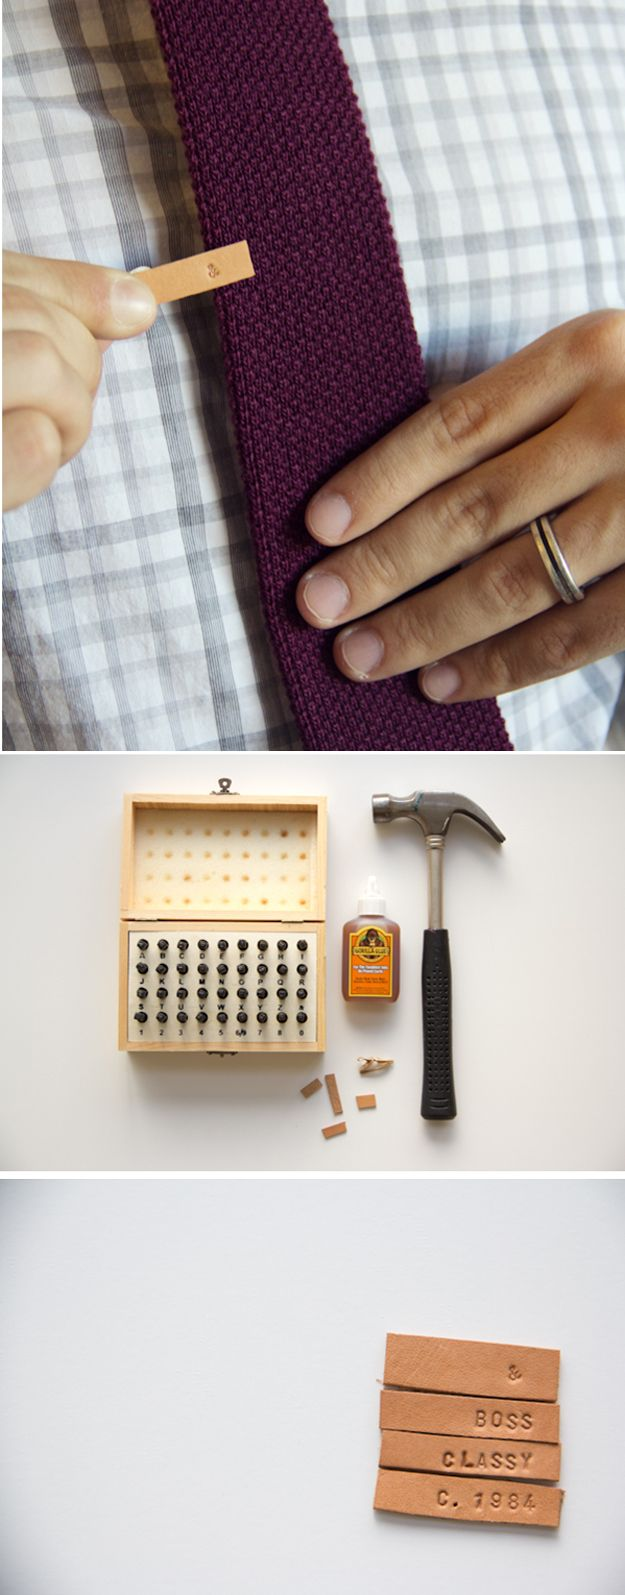 The 25 best cool fathers day gifts ideas on pinterest home made 21 cool diy fathers day gift ideas negle Images